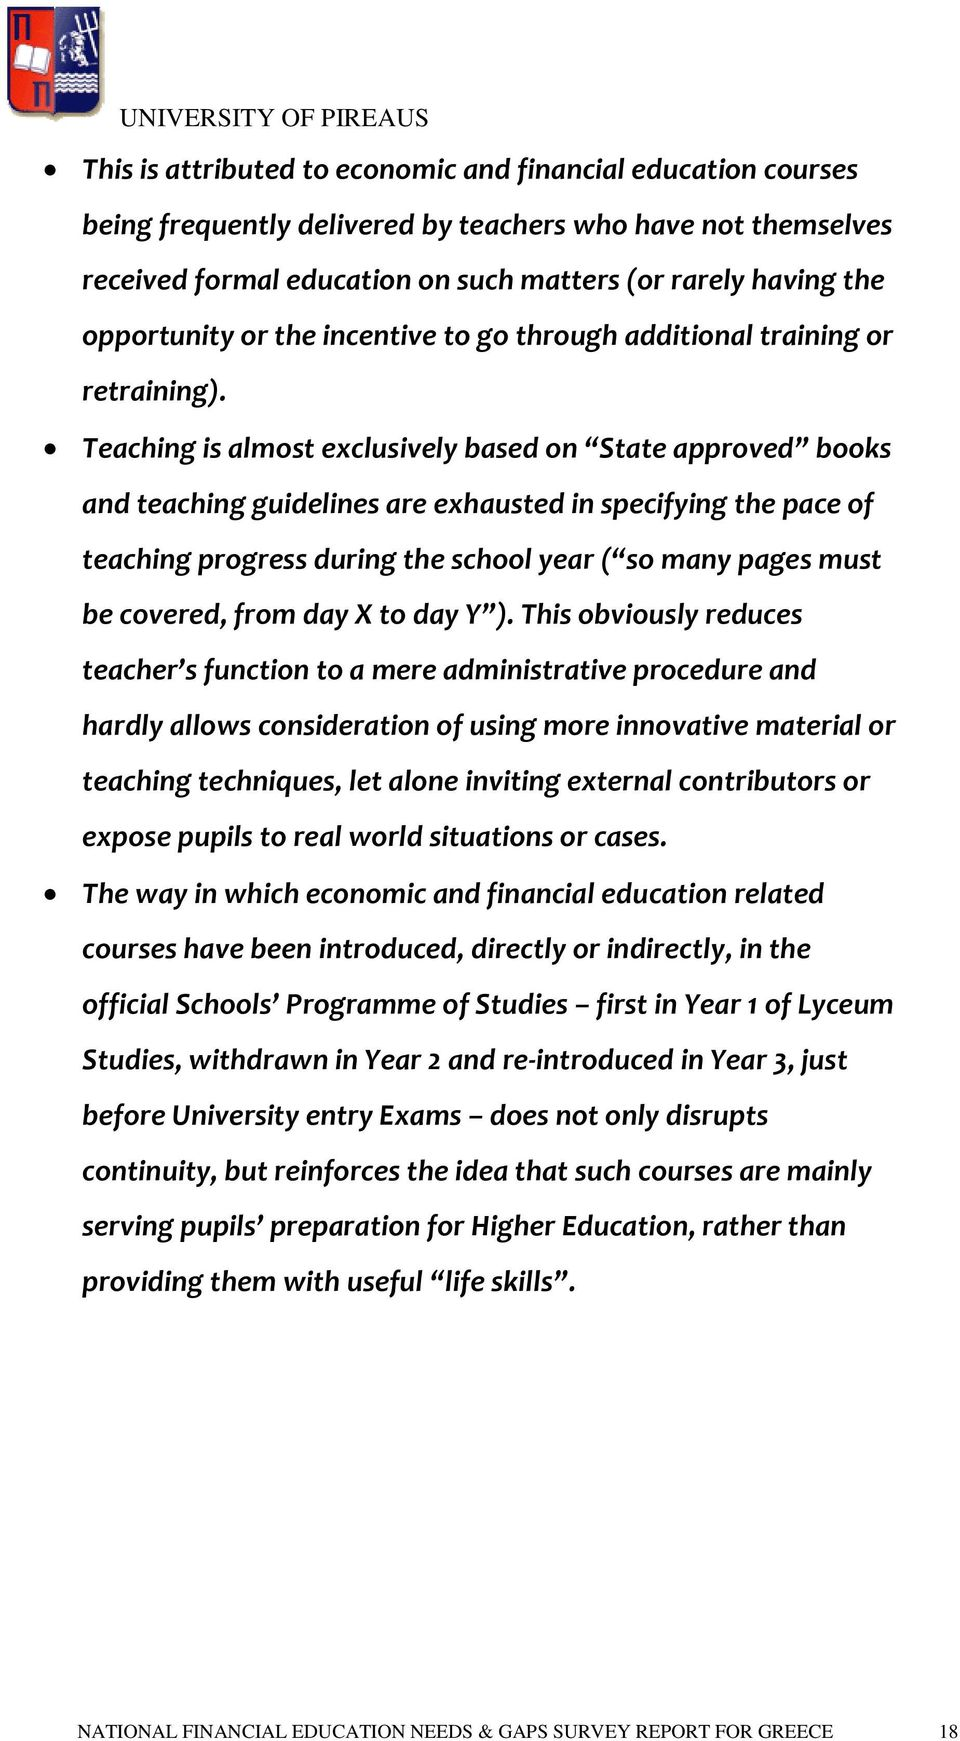 Teaching is almost exclusively based on State approved books and teaching guidelines are exhausted in specifying the pace of teaching progress during the school year ( so many pages must be covered,